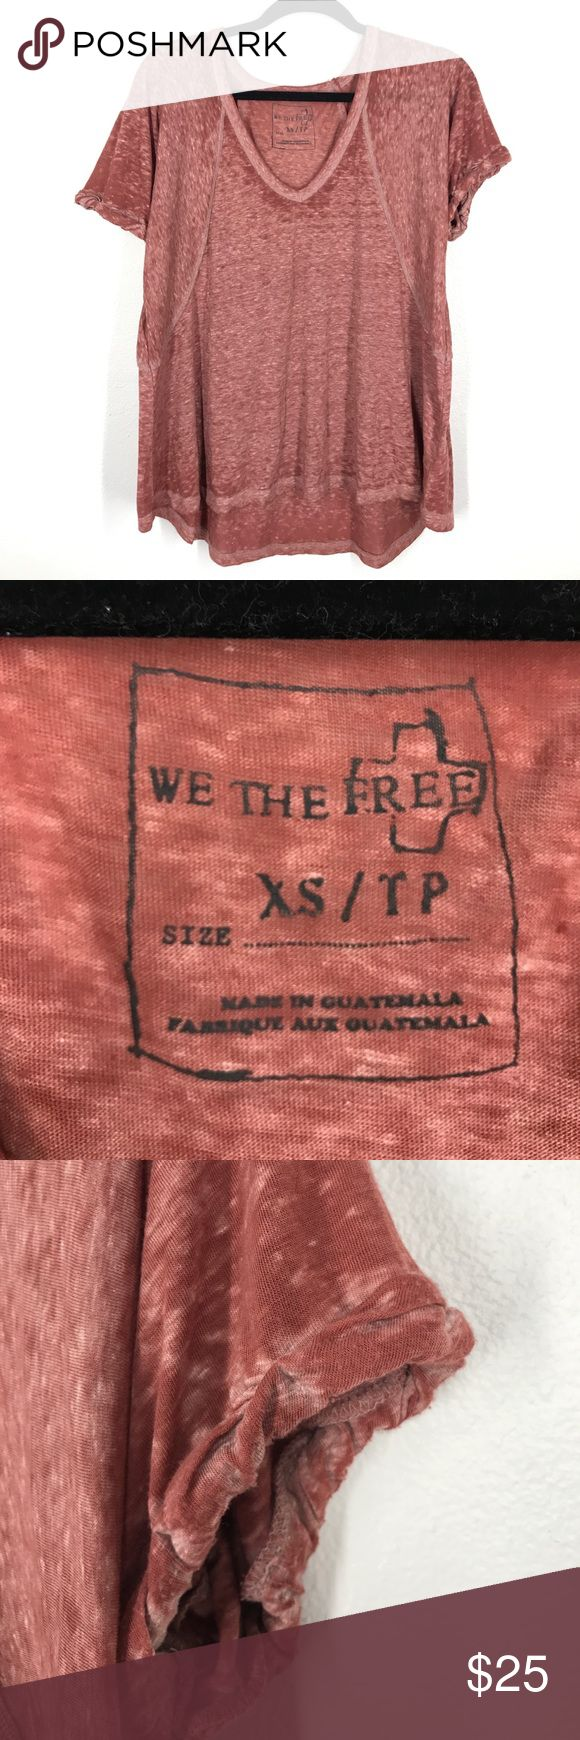 Free People We the Free red short sleeve top XS Oversized thin jersey knit top. Rolled sleeve details. In great condition! Free People Tops Tees - Short Sleeve